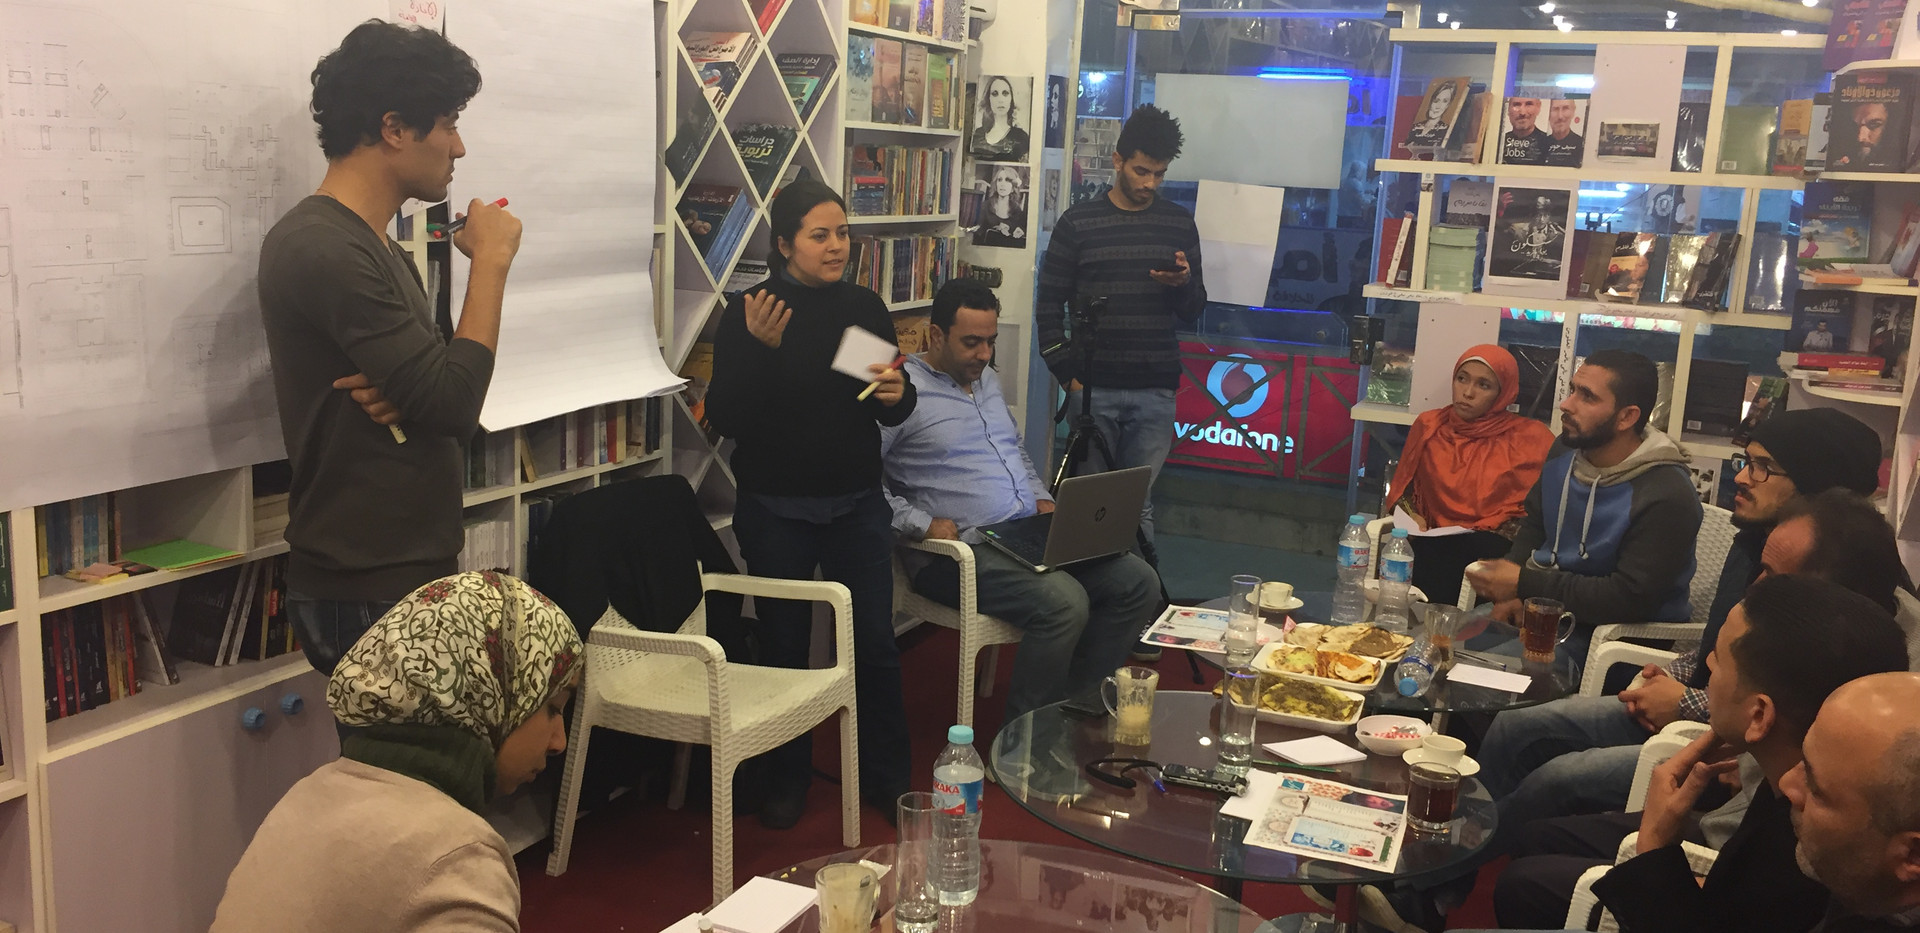 The Participatory Needs Assessment Workshop conducted at the AAA involving shop owners and mall managers